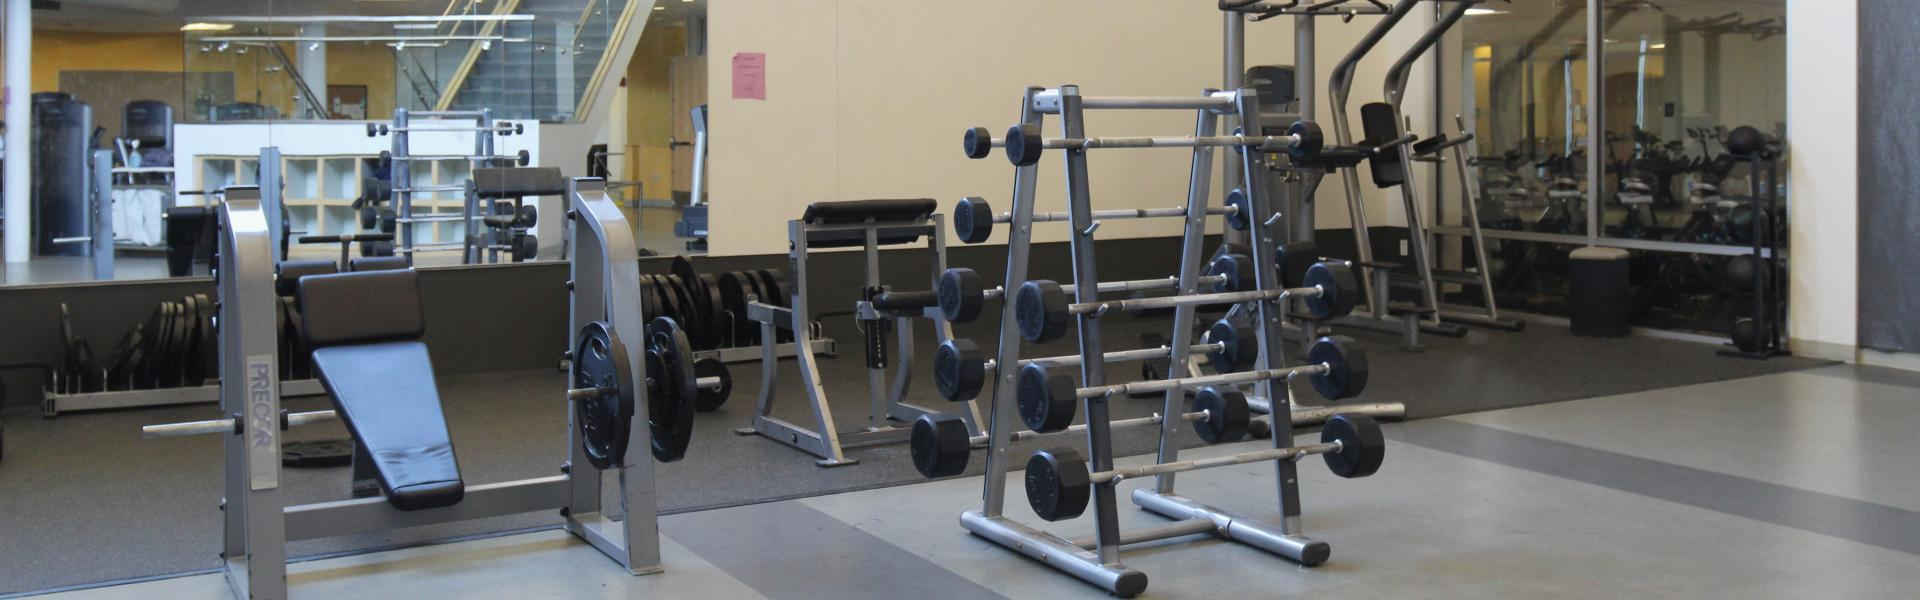 fitness equipment in the fitness center